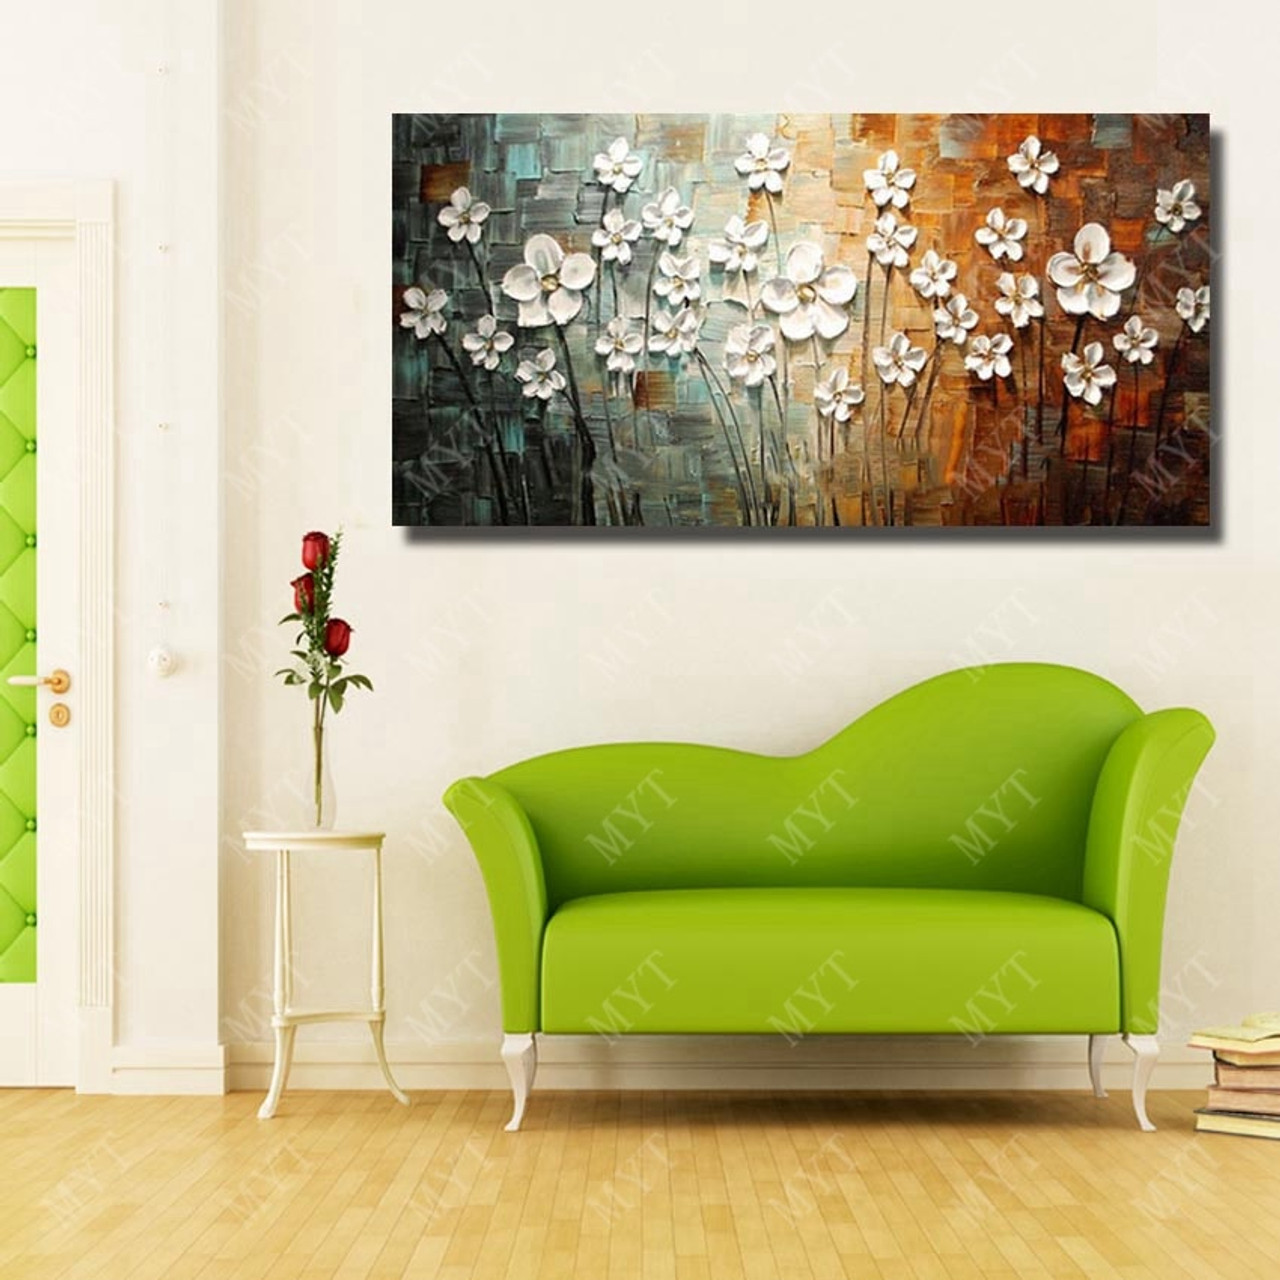 Large Canvas Art For Living Room